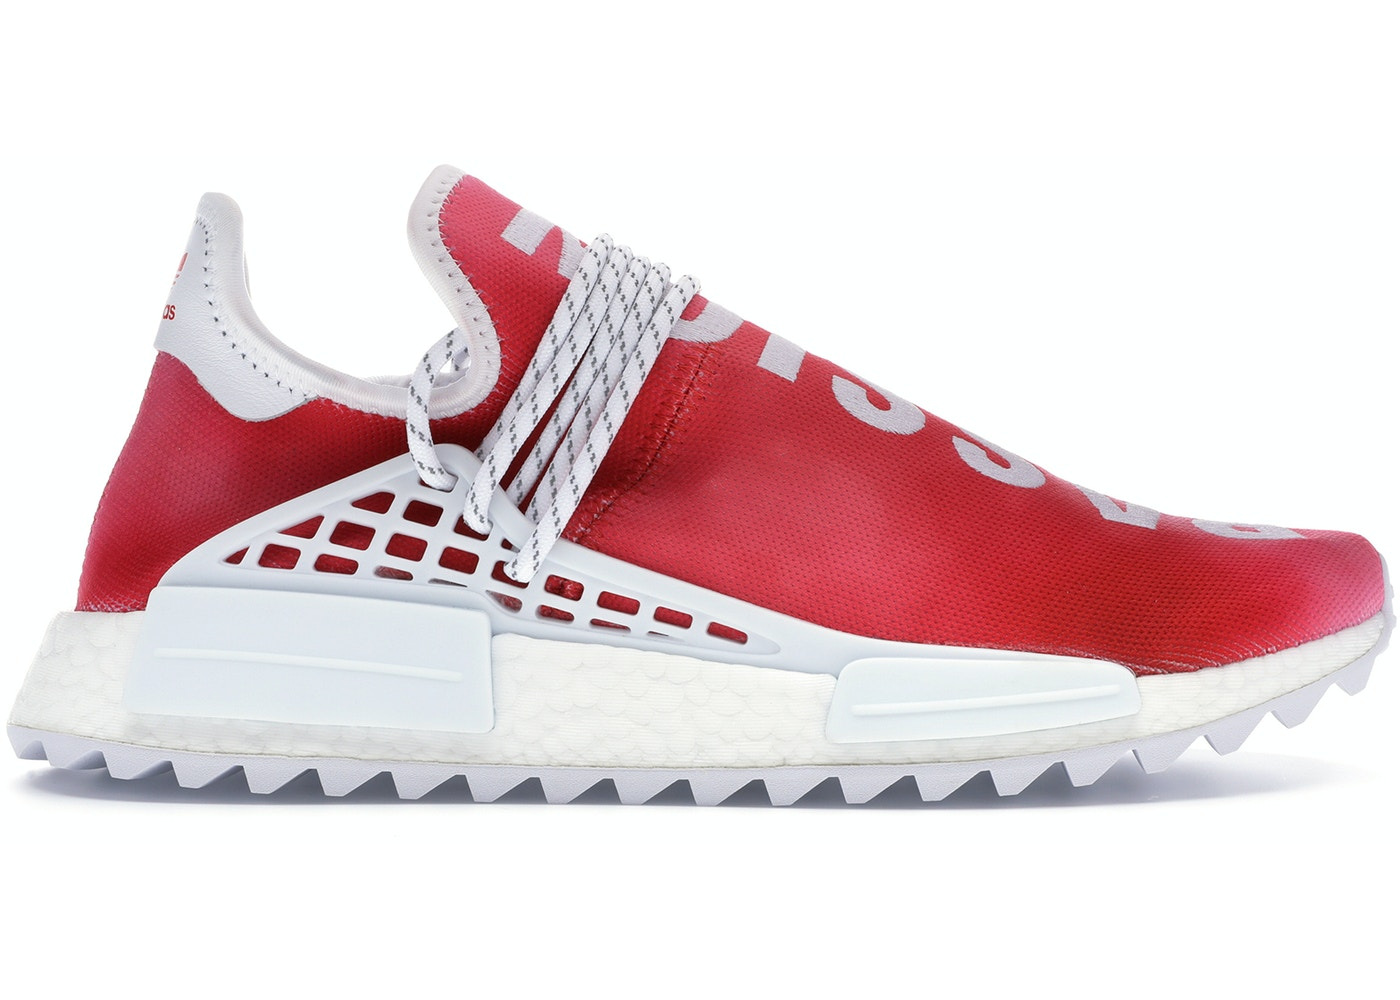 quality design d92ef 36bde adidas NMD HU Shoes - Release Date